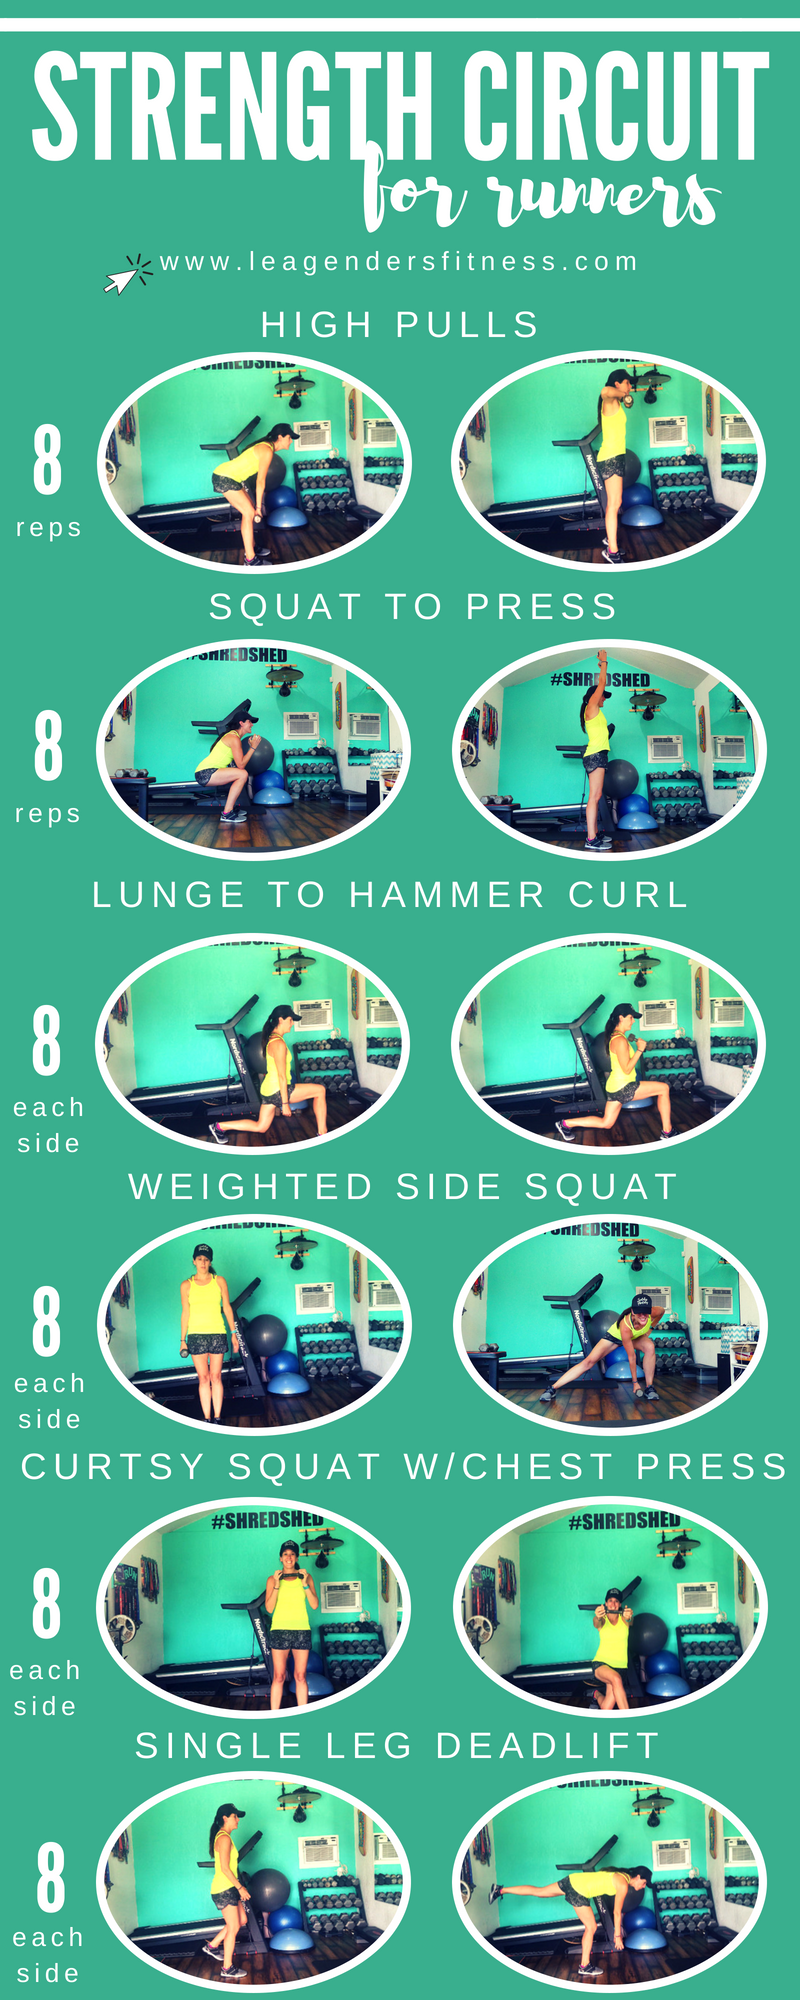 Ultimate strength workout for runners. Save to your favorite Pinterest board for later.